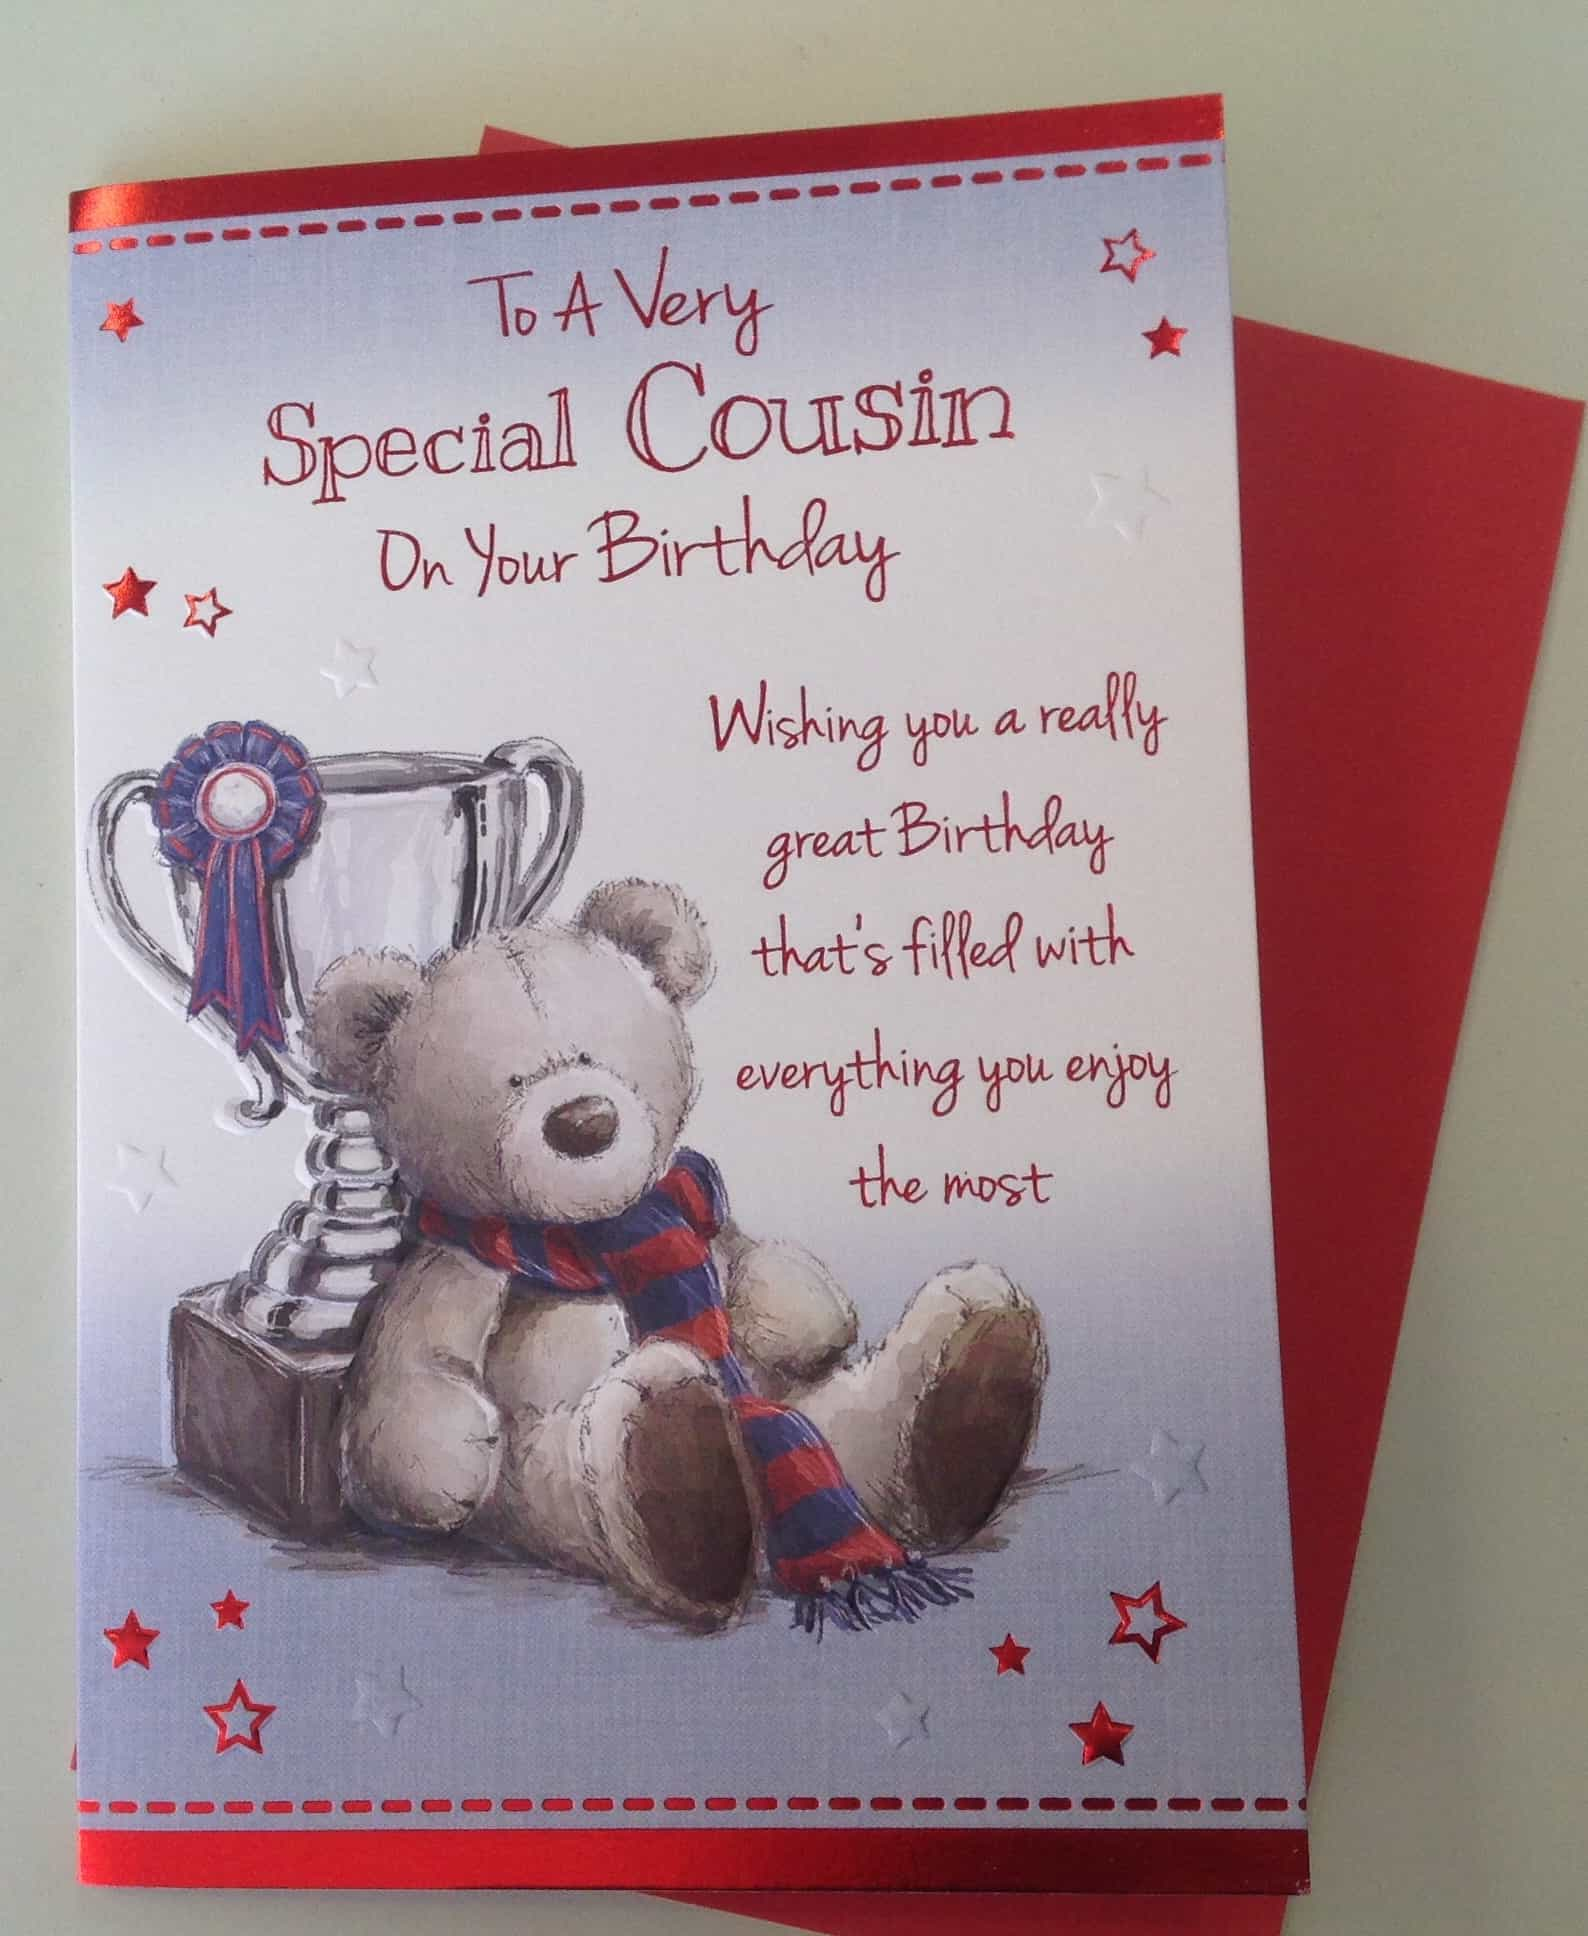 Cousin Birthday Card To A Very Special Cousin With Teddy Bear